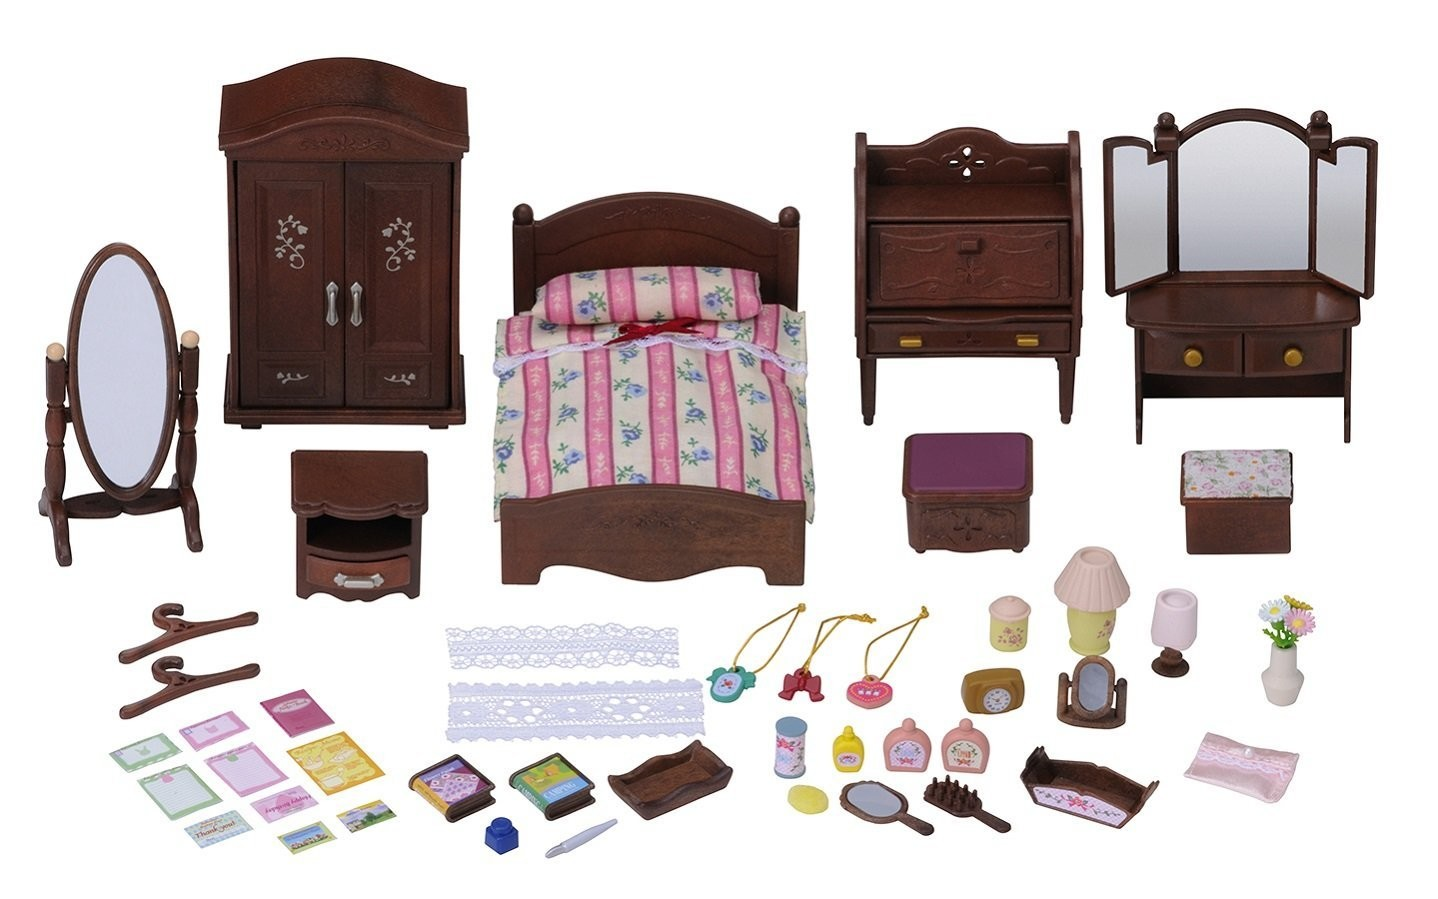 Sylvanian Master Bedroom Set